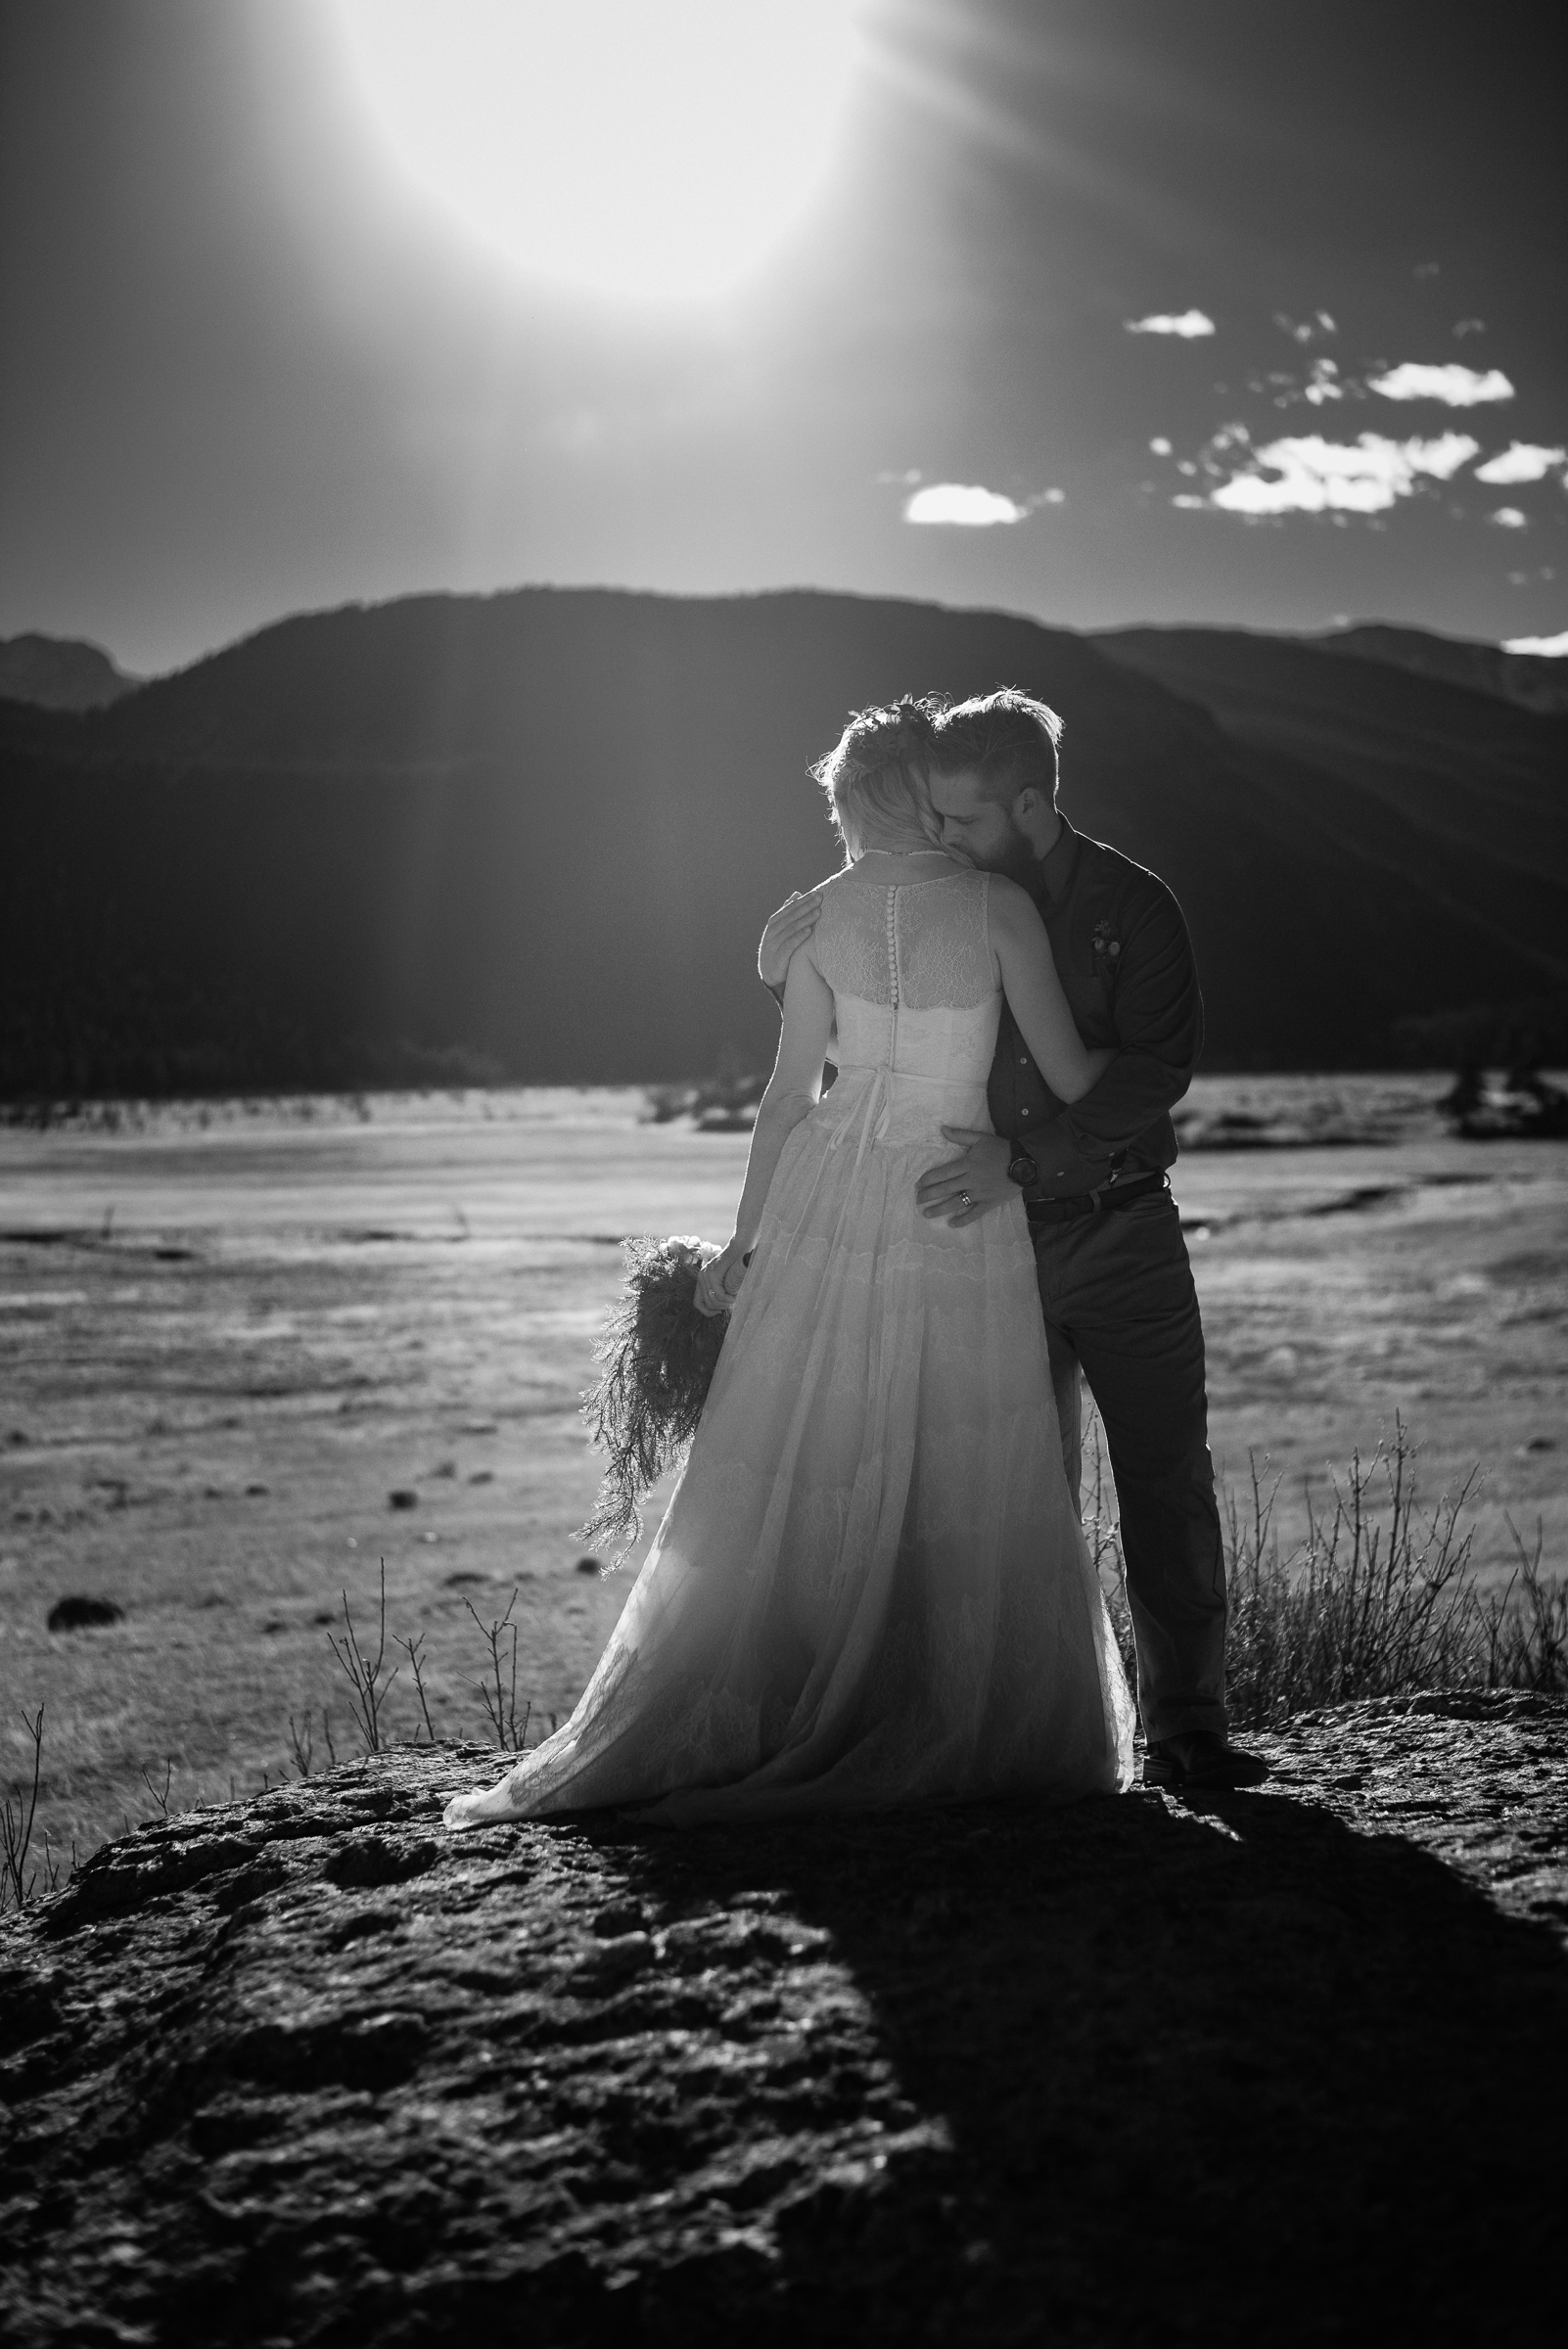 RockyMountain National Park Elopement| Colorado Wedding Photography | Sweetie Photo, Lifestyle Wedding Photography, Colorado and Beyond